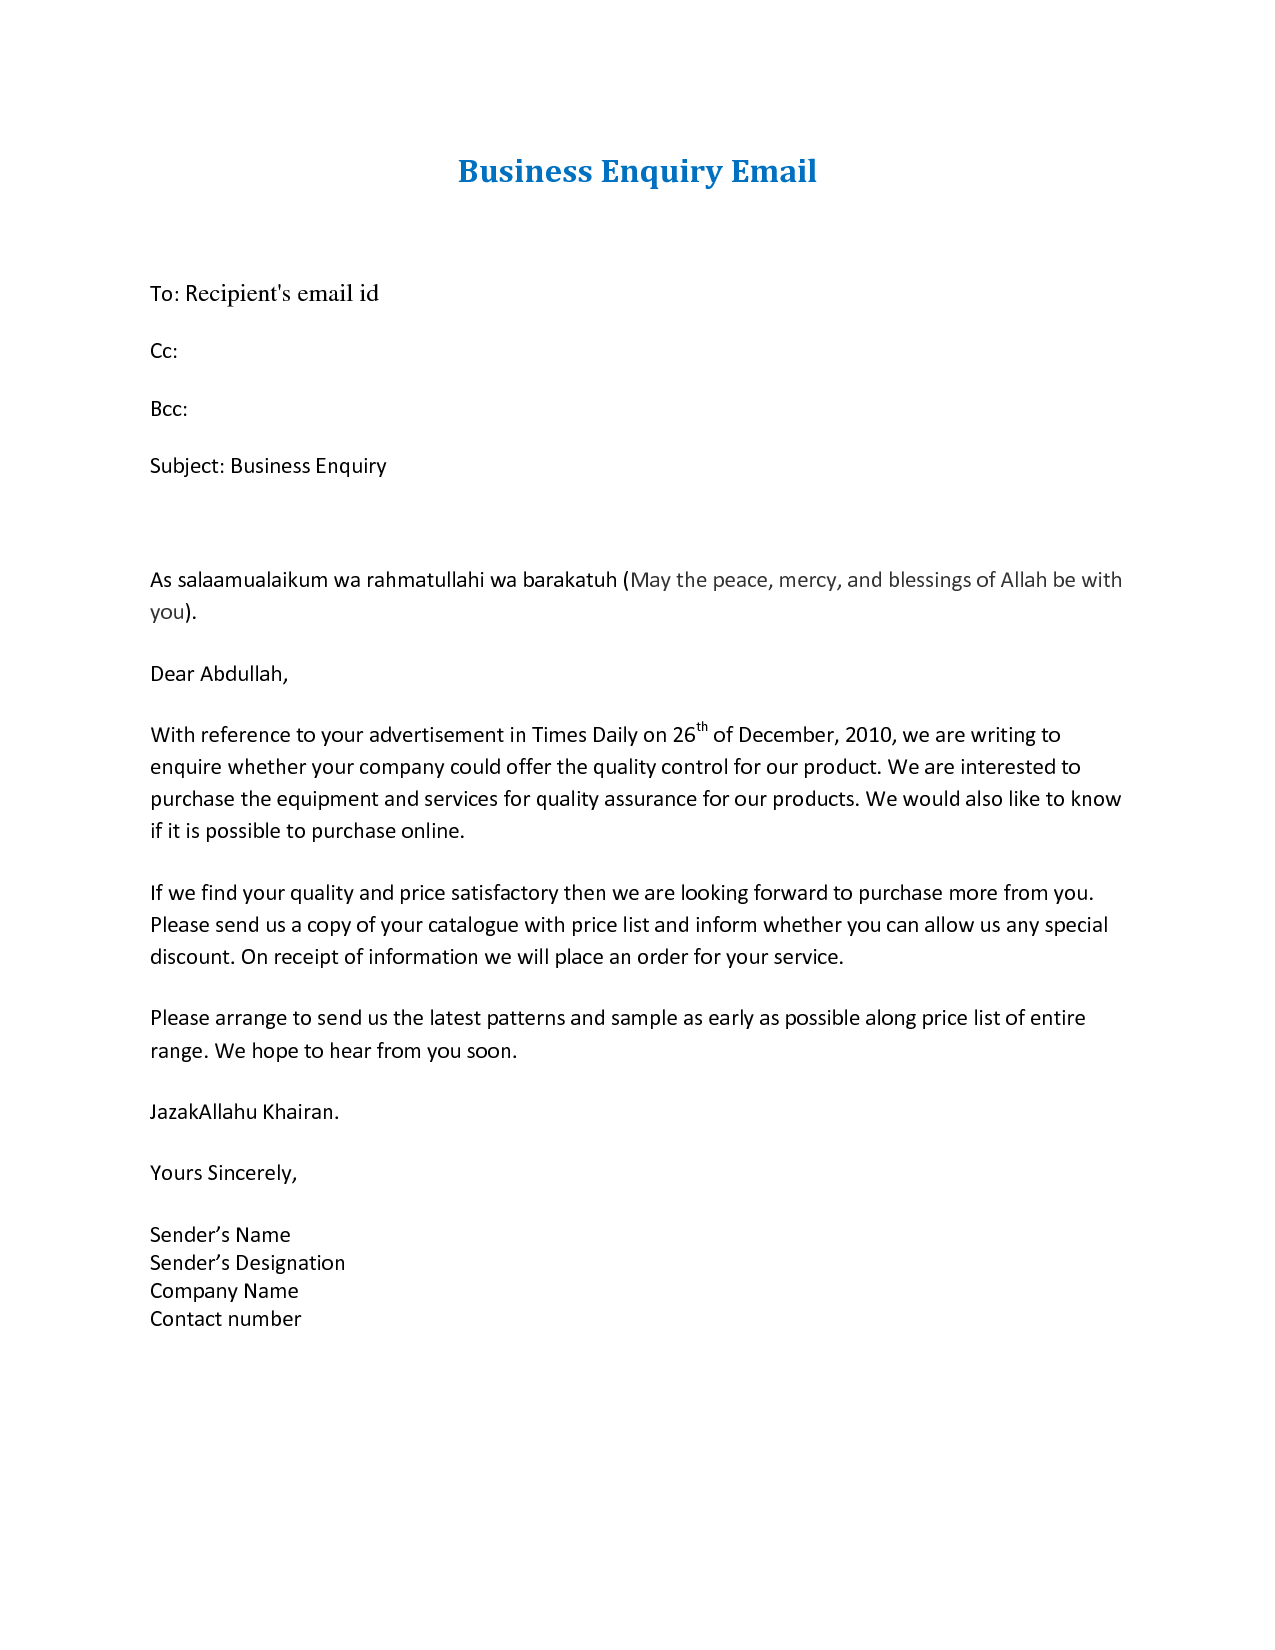 Business Letter Format Email from appareldream.com